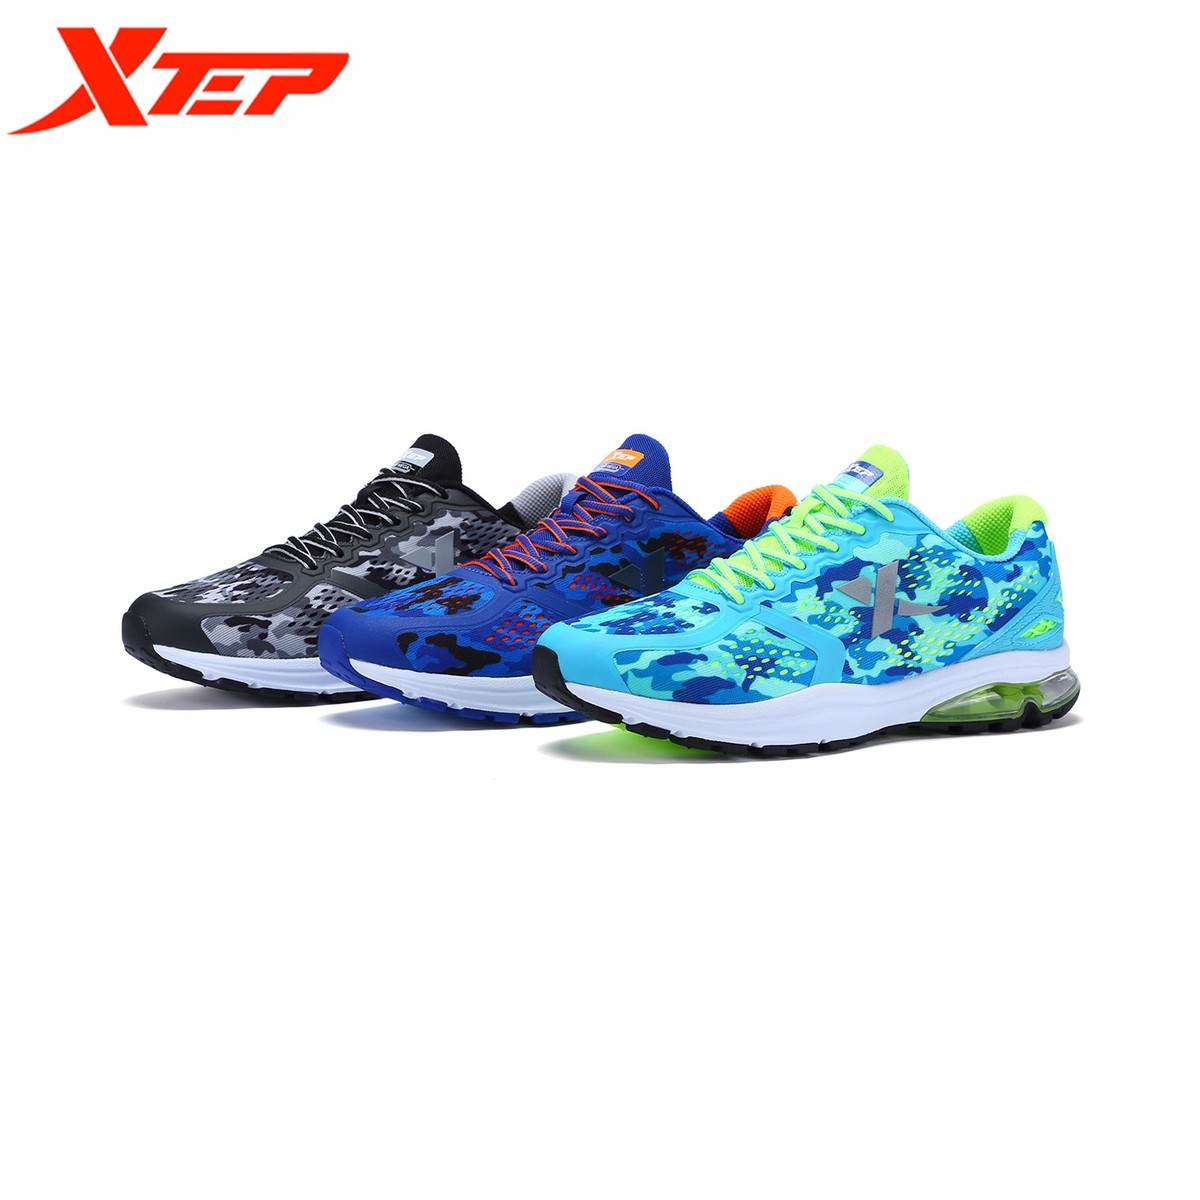 XTEP Special Step Male Shoe 2017 All Season New Product Air Lovers Net Noodles Ventilation Shock Absorption Man Track Sneakers пена монтажная mastertex all season 750 pro всесезонная